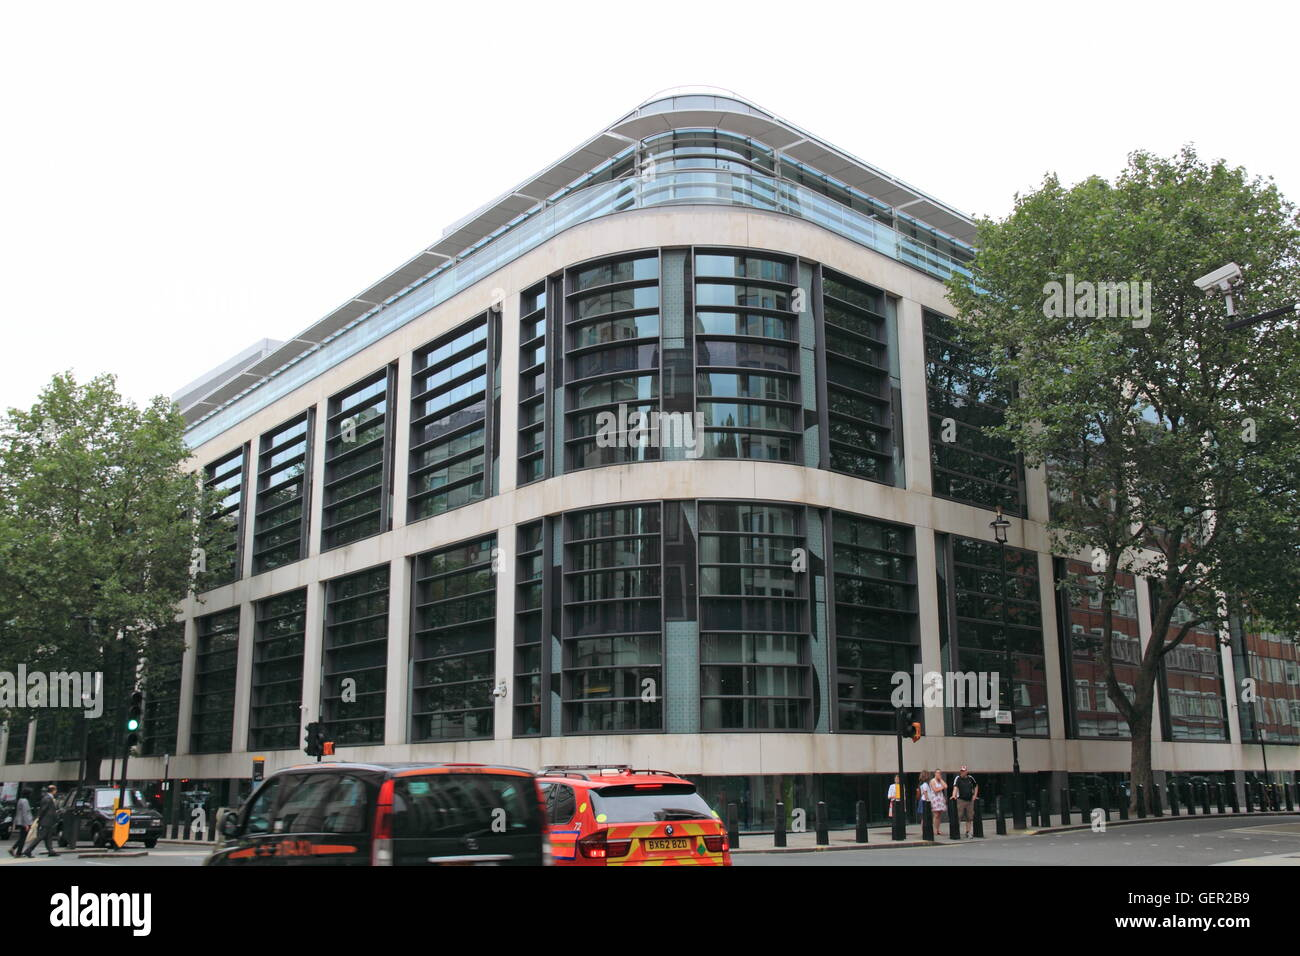 Department for Communities and Local Government (DCLG), Marsham Street, London, England, Great Britain, United Kingdom - Stock Image